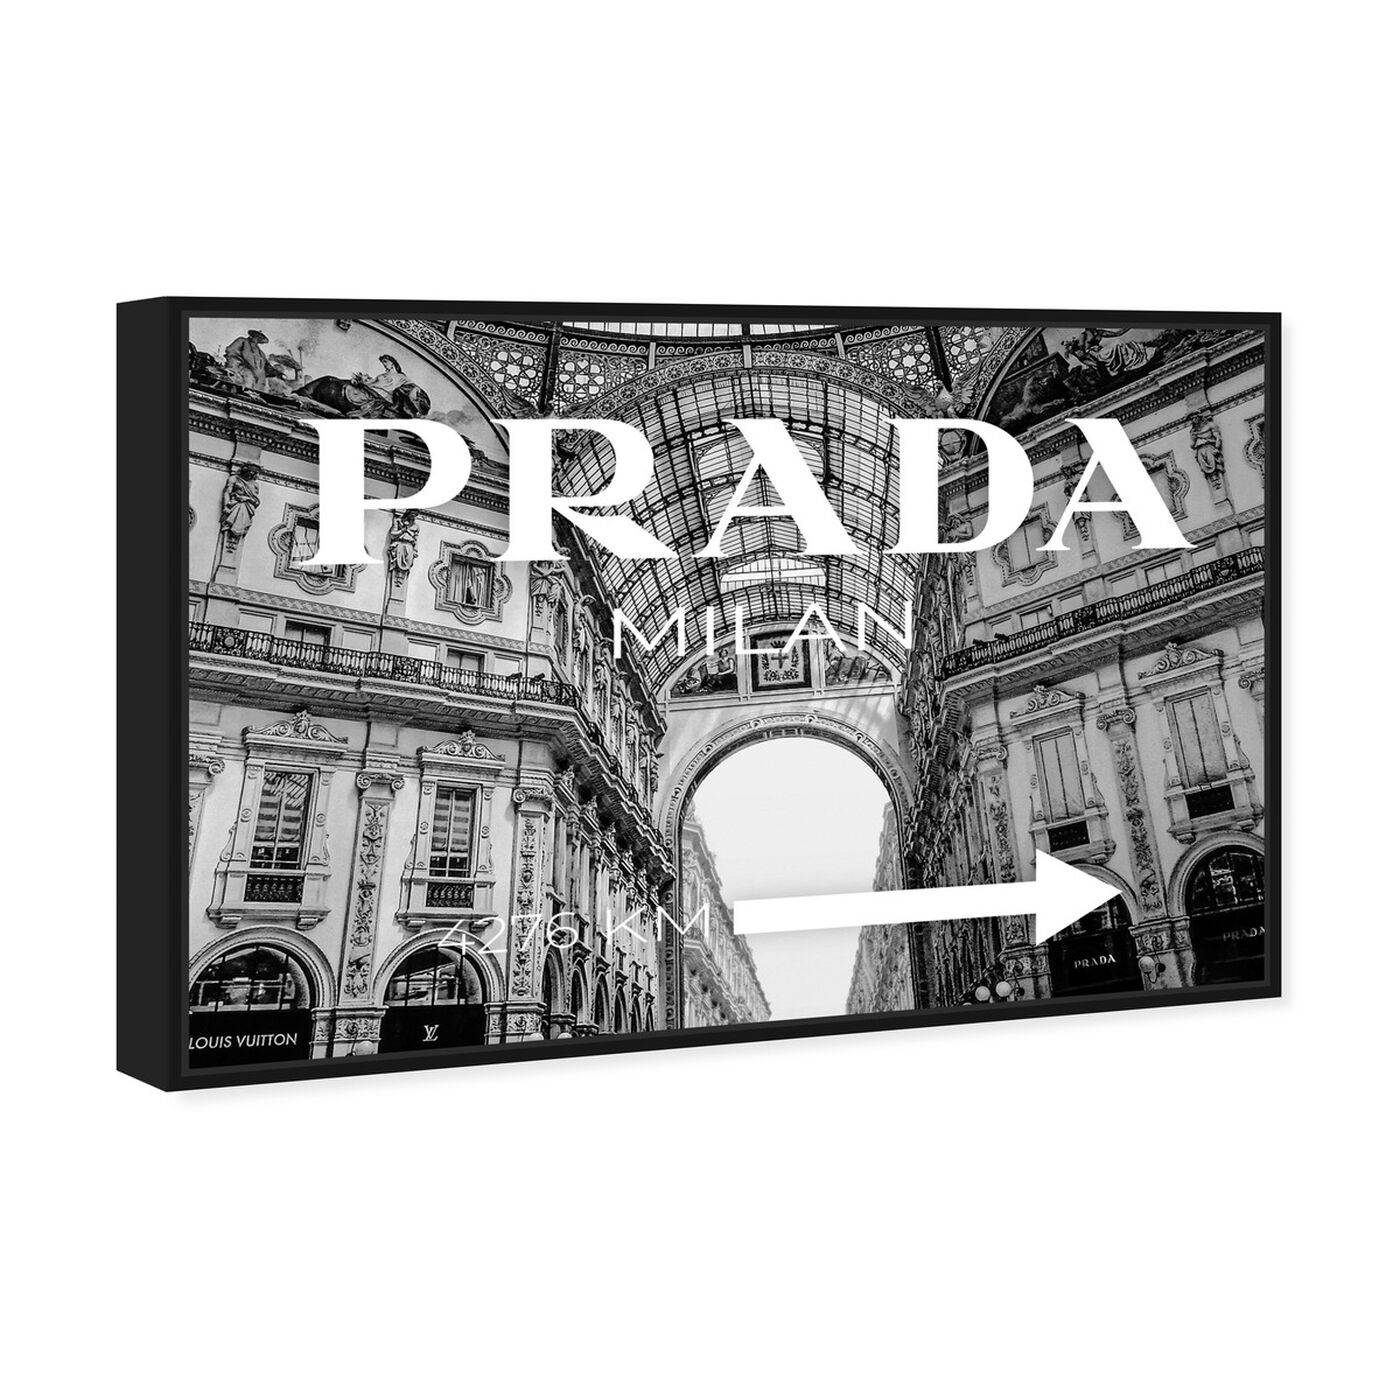 Angled view of Milan Galleria Roadsign Noir featuring fashion and glam and road signs art.